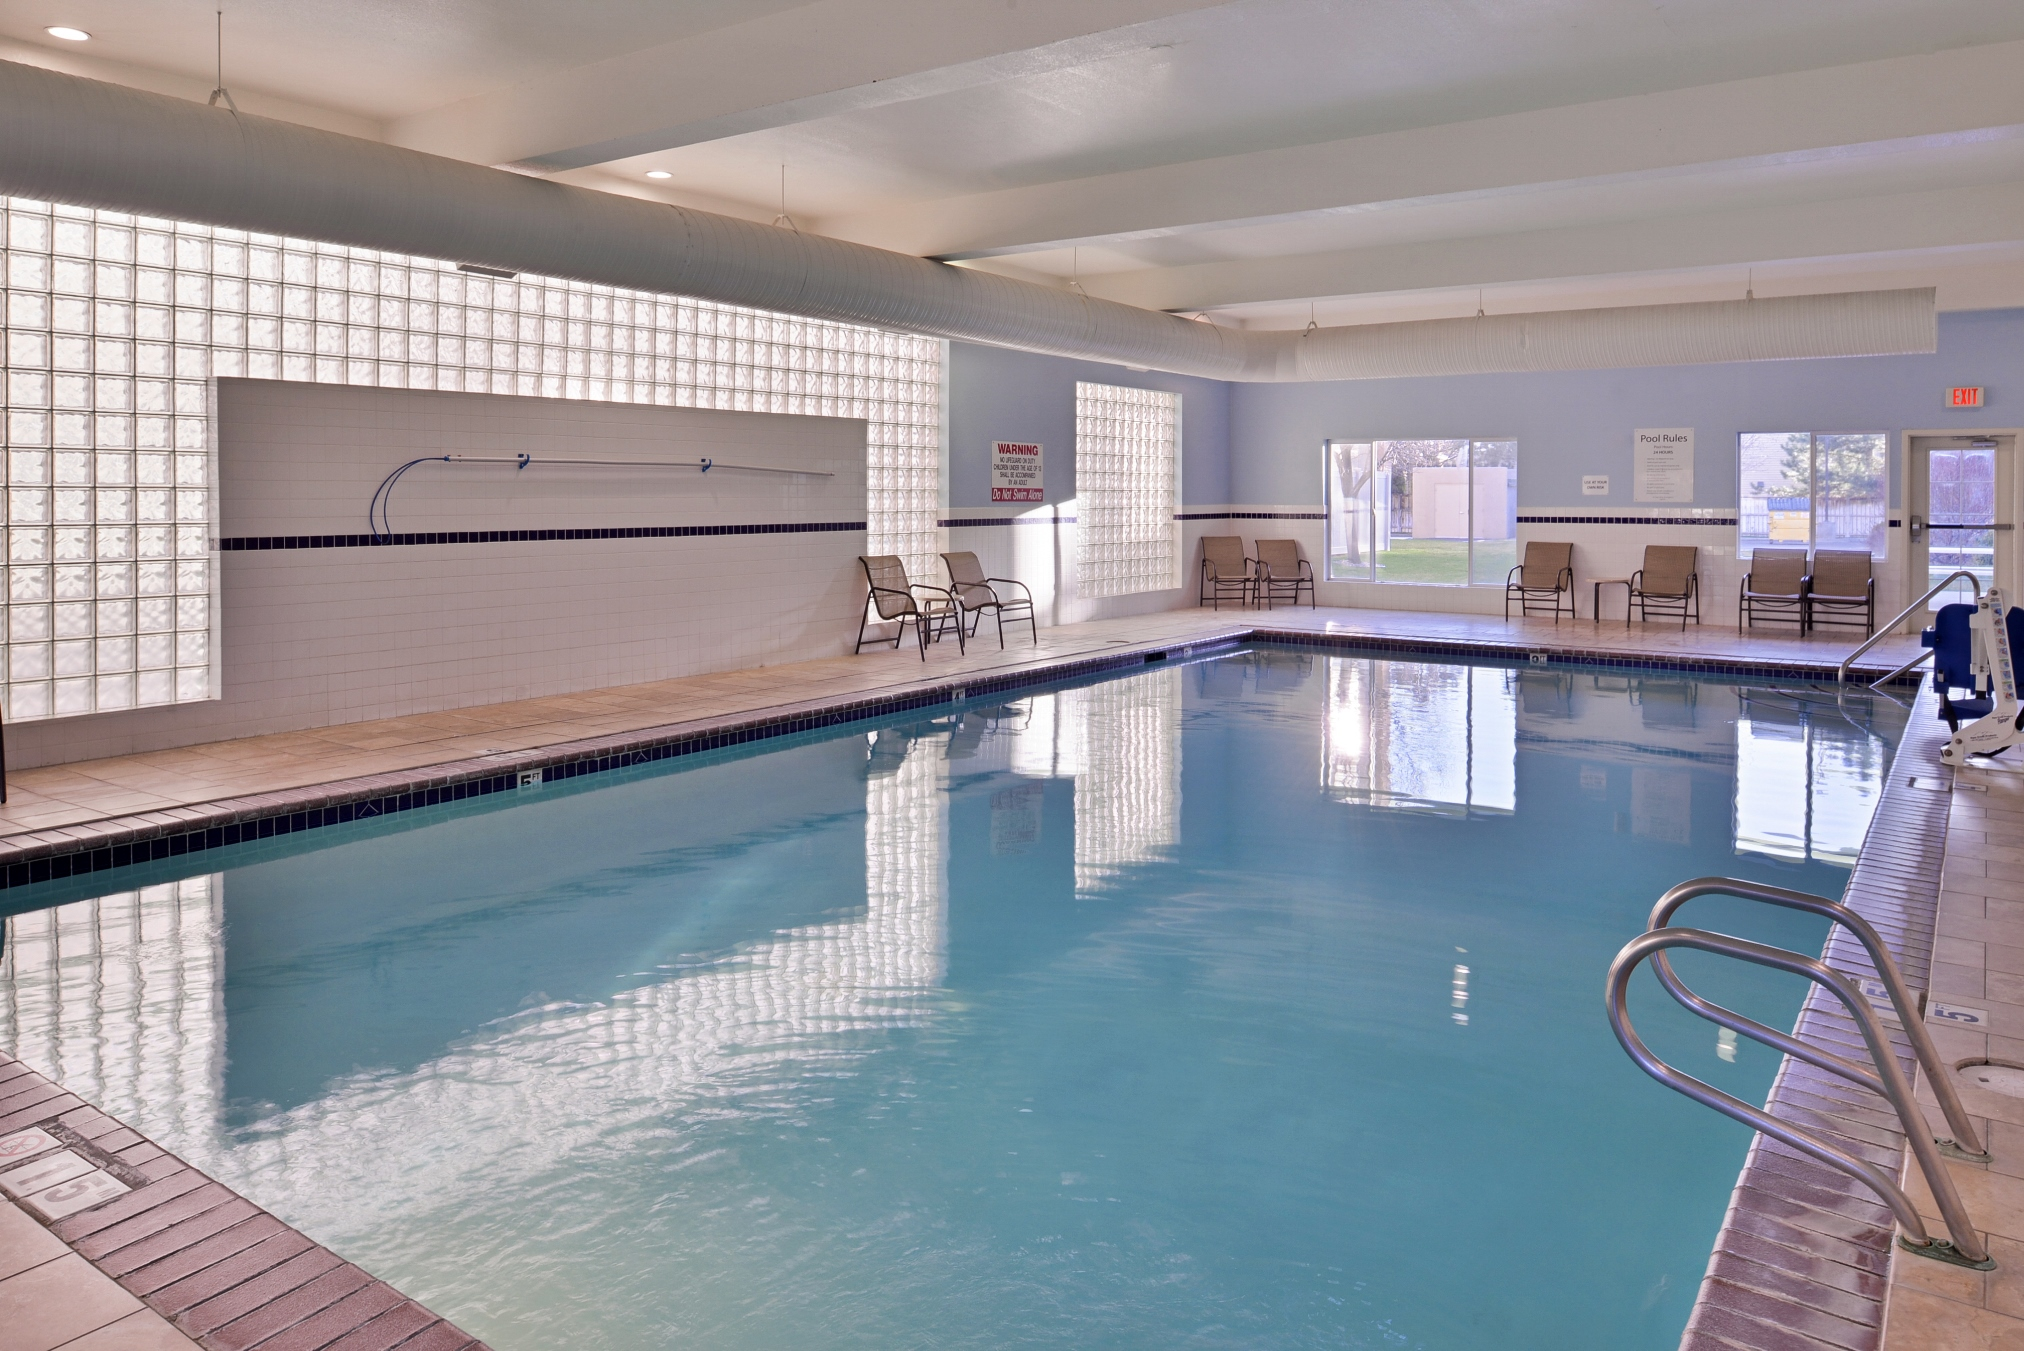 Hpliday Inn Express & Suites - Pool